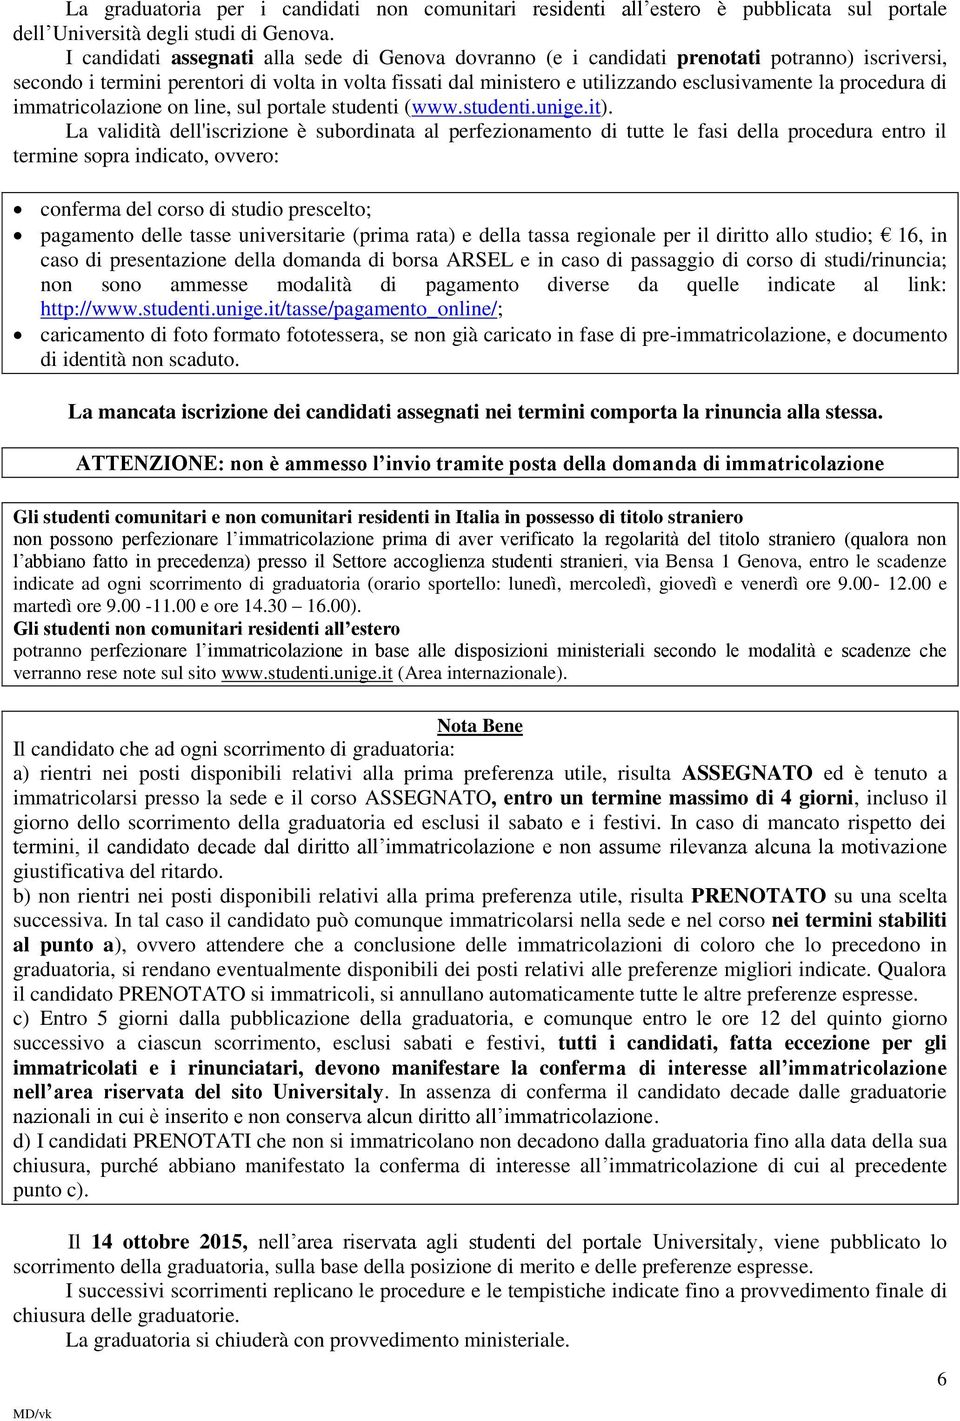 procedura di immatricolazione on line, sul portale studenti (www.studenti.unige.it).